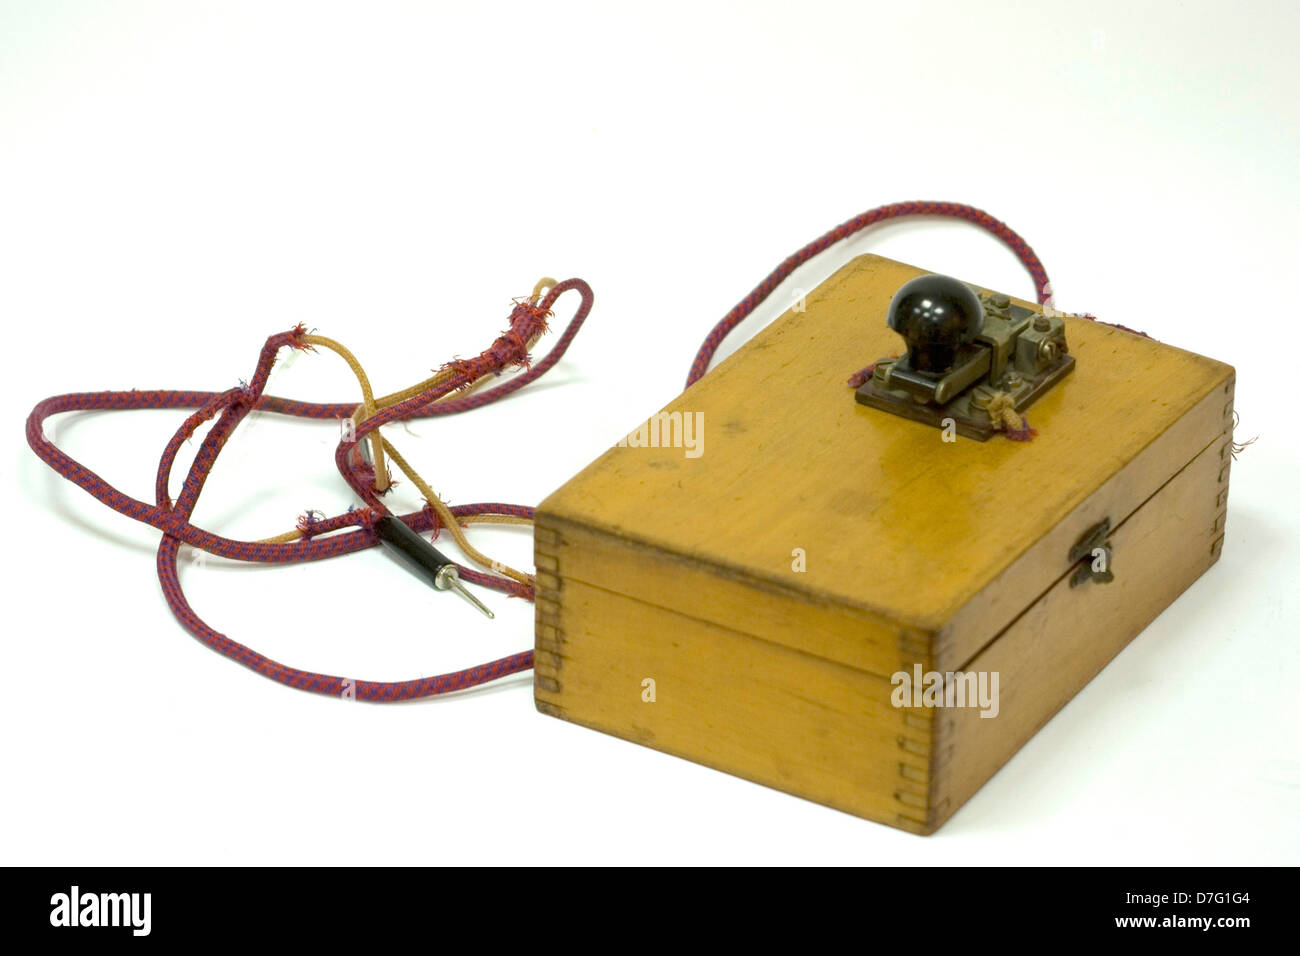 morse signal machine - Stock Image